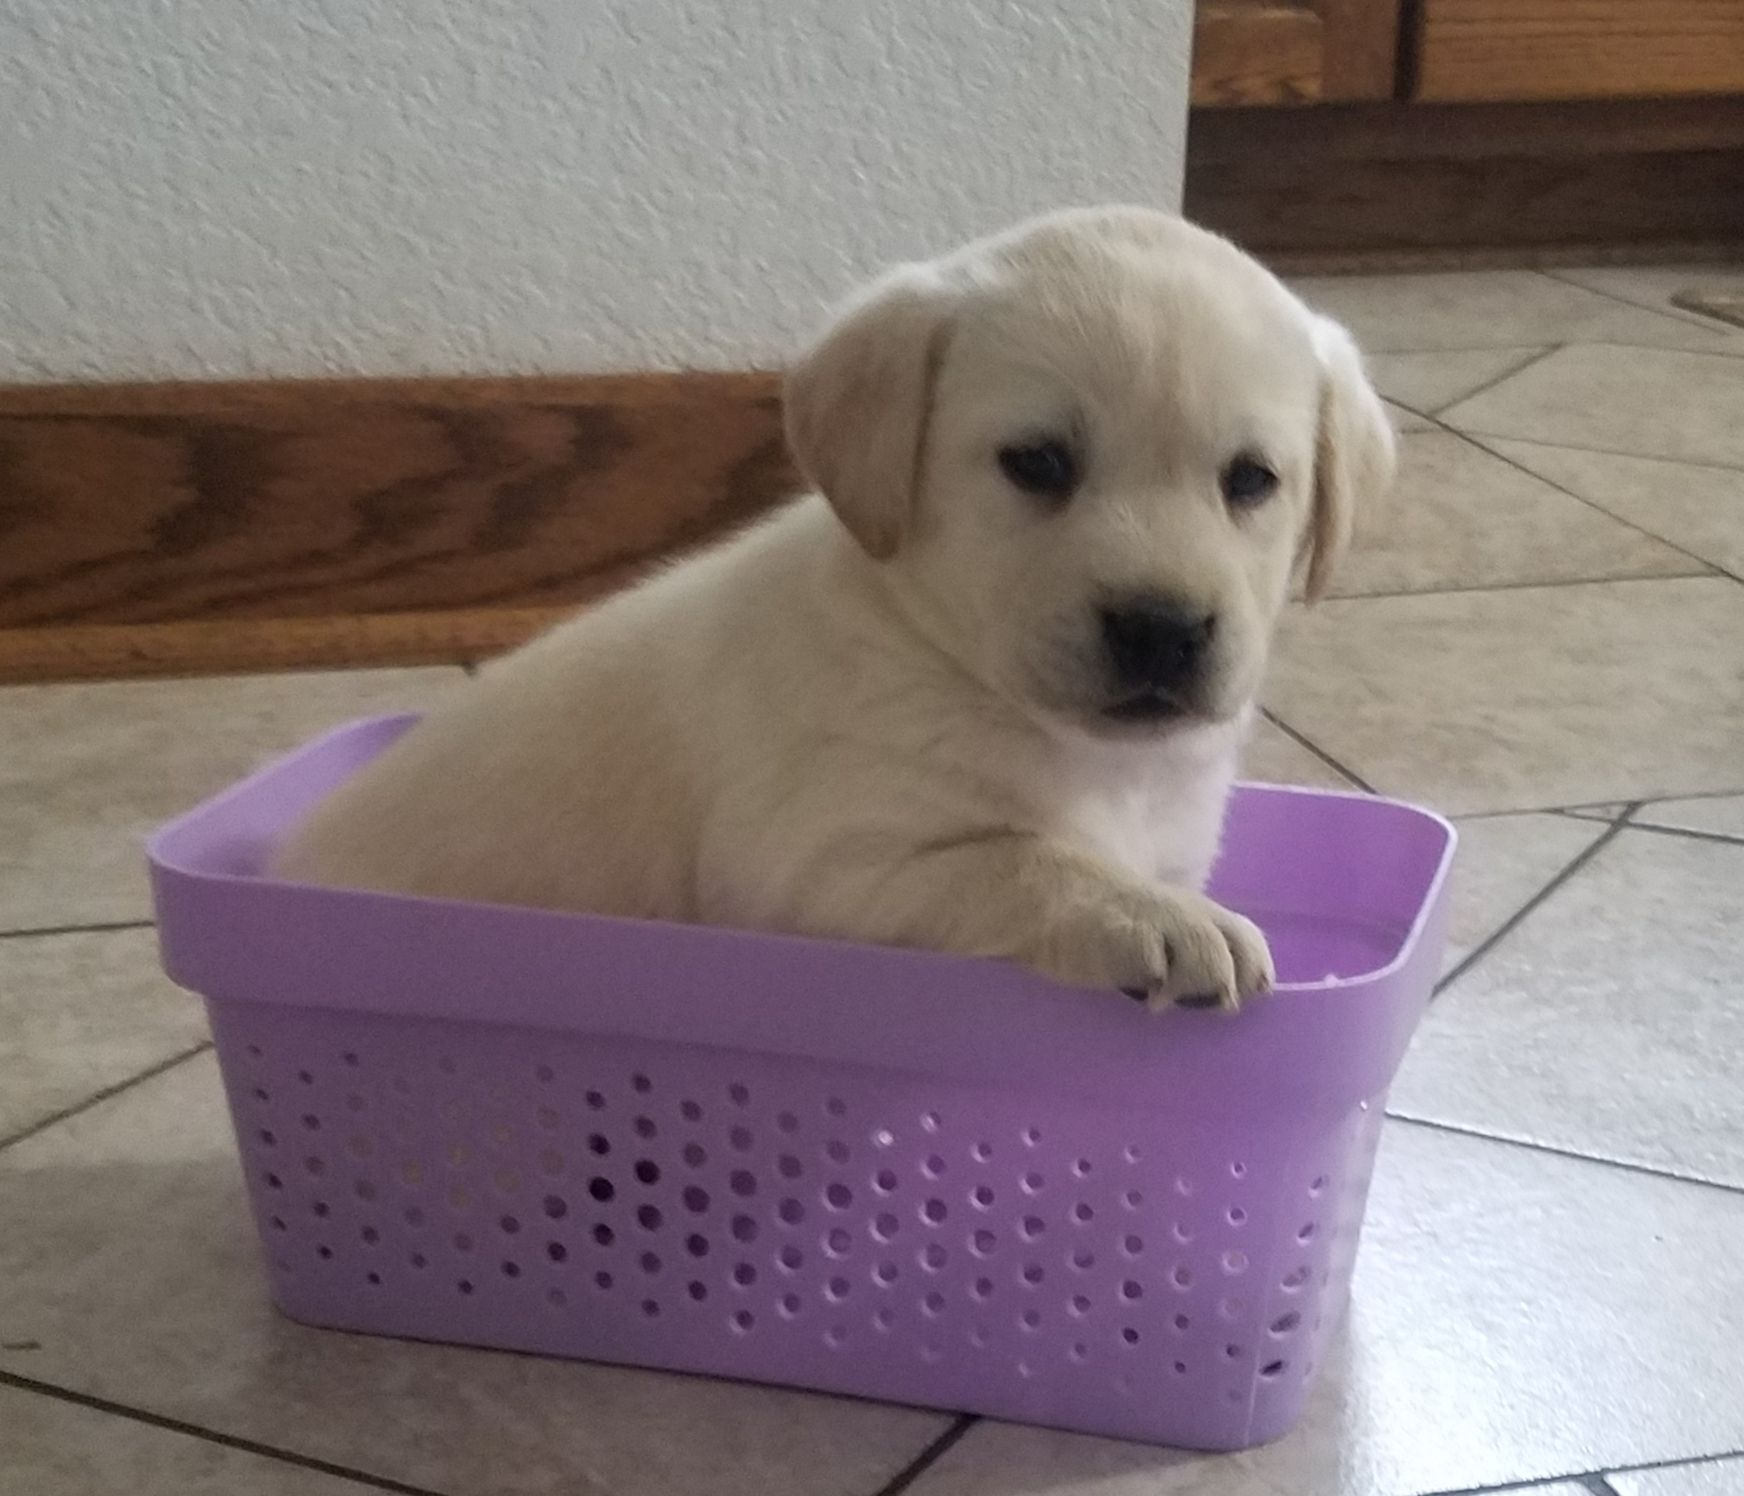 Dolle AKC Labrador Retriever doggie for sale at Woodburn